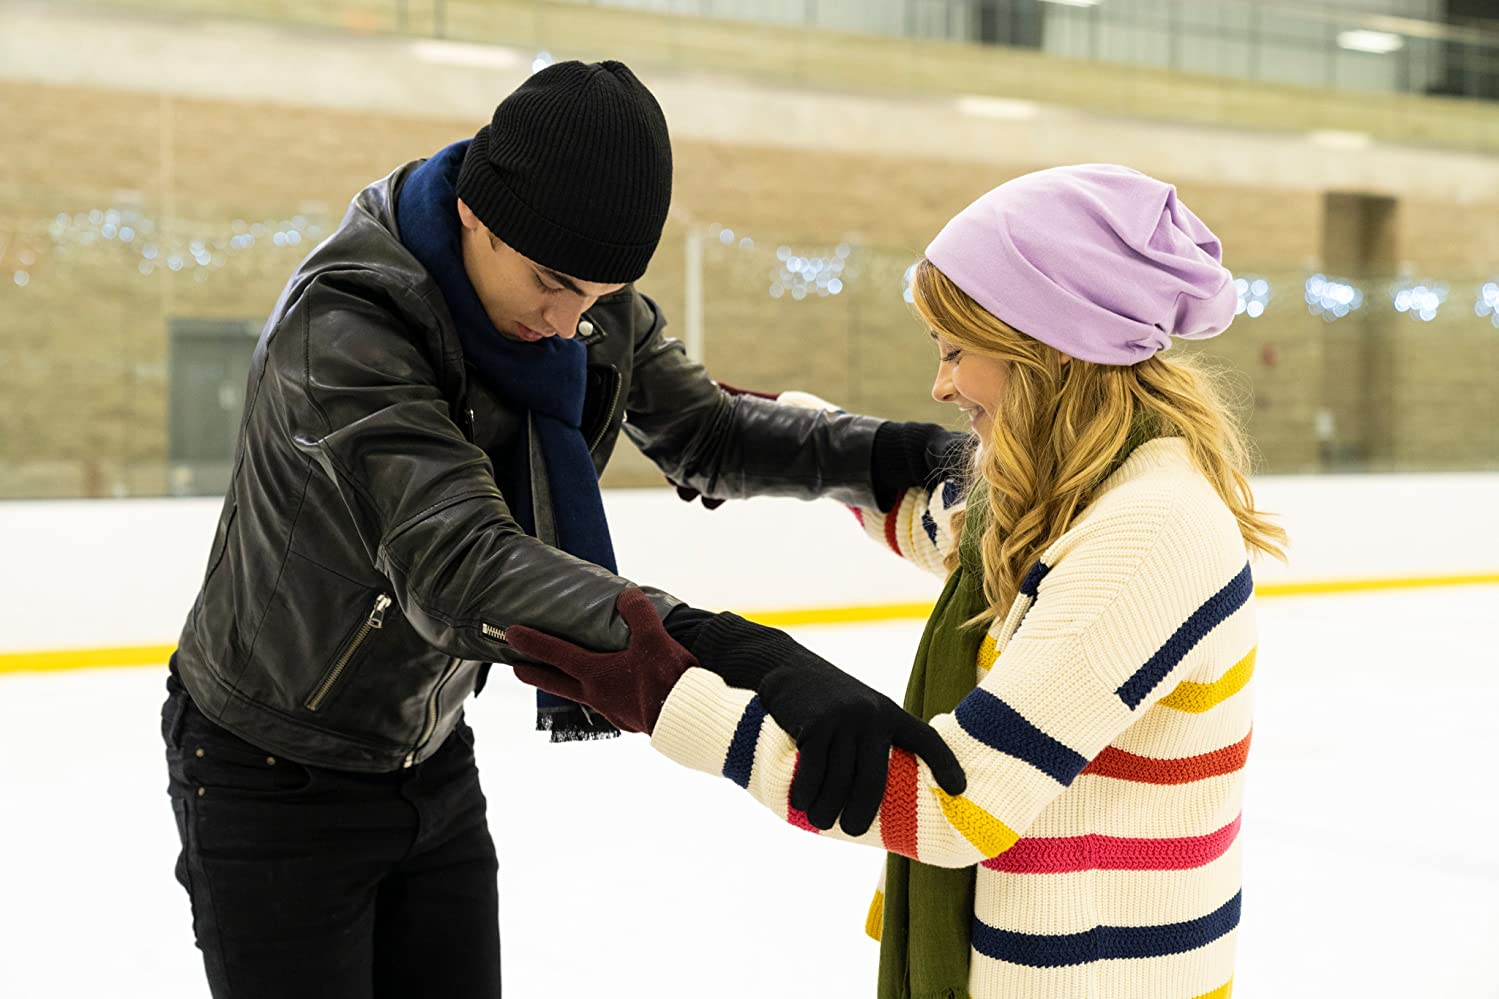 """Hero Fiennes-Tiffin and Josephine Langford go on a cheesy, awkward ice-skating date in """"After We Collided""""."""